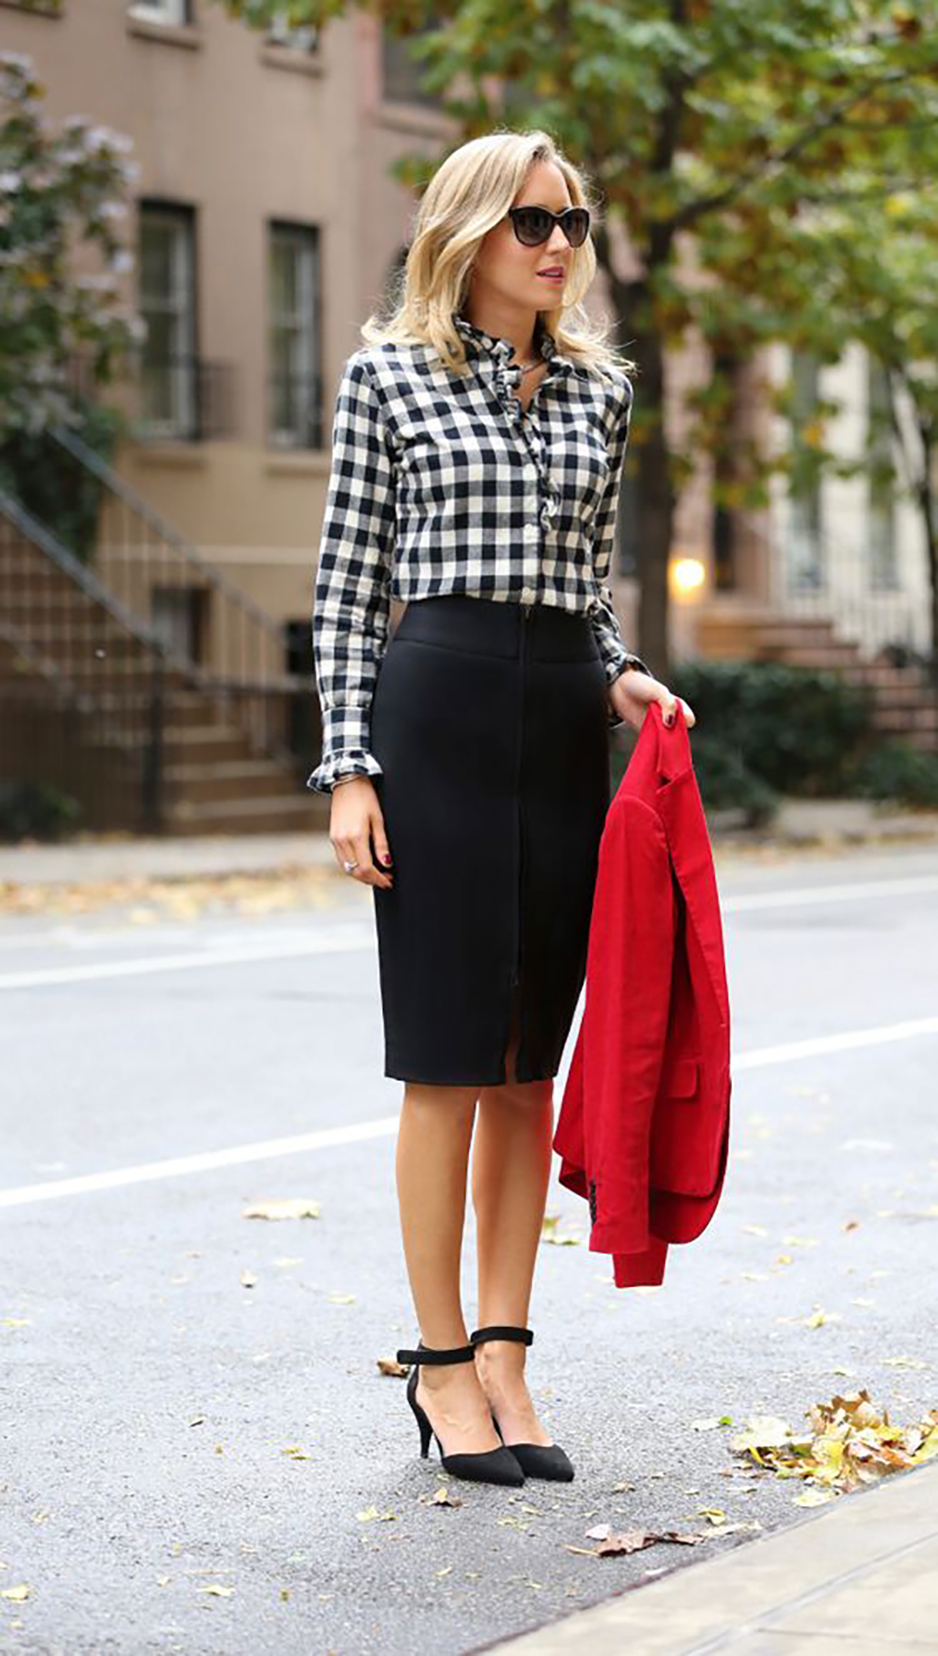 15 summer looks for the office Look 2